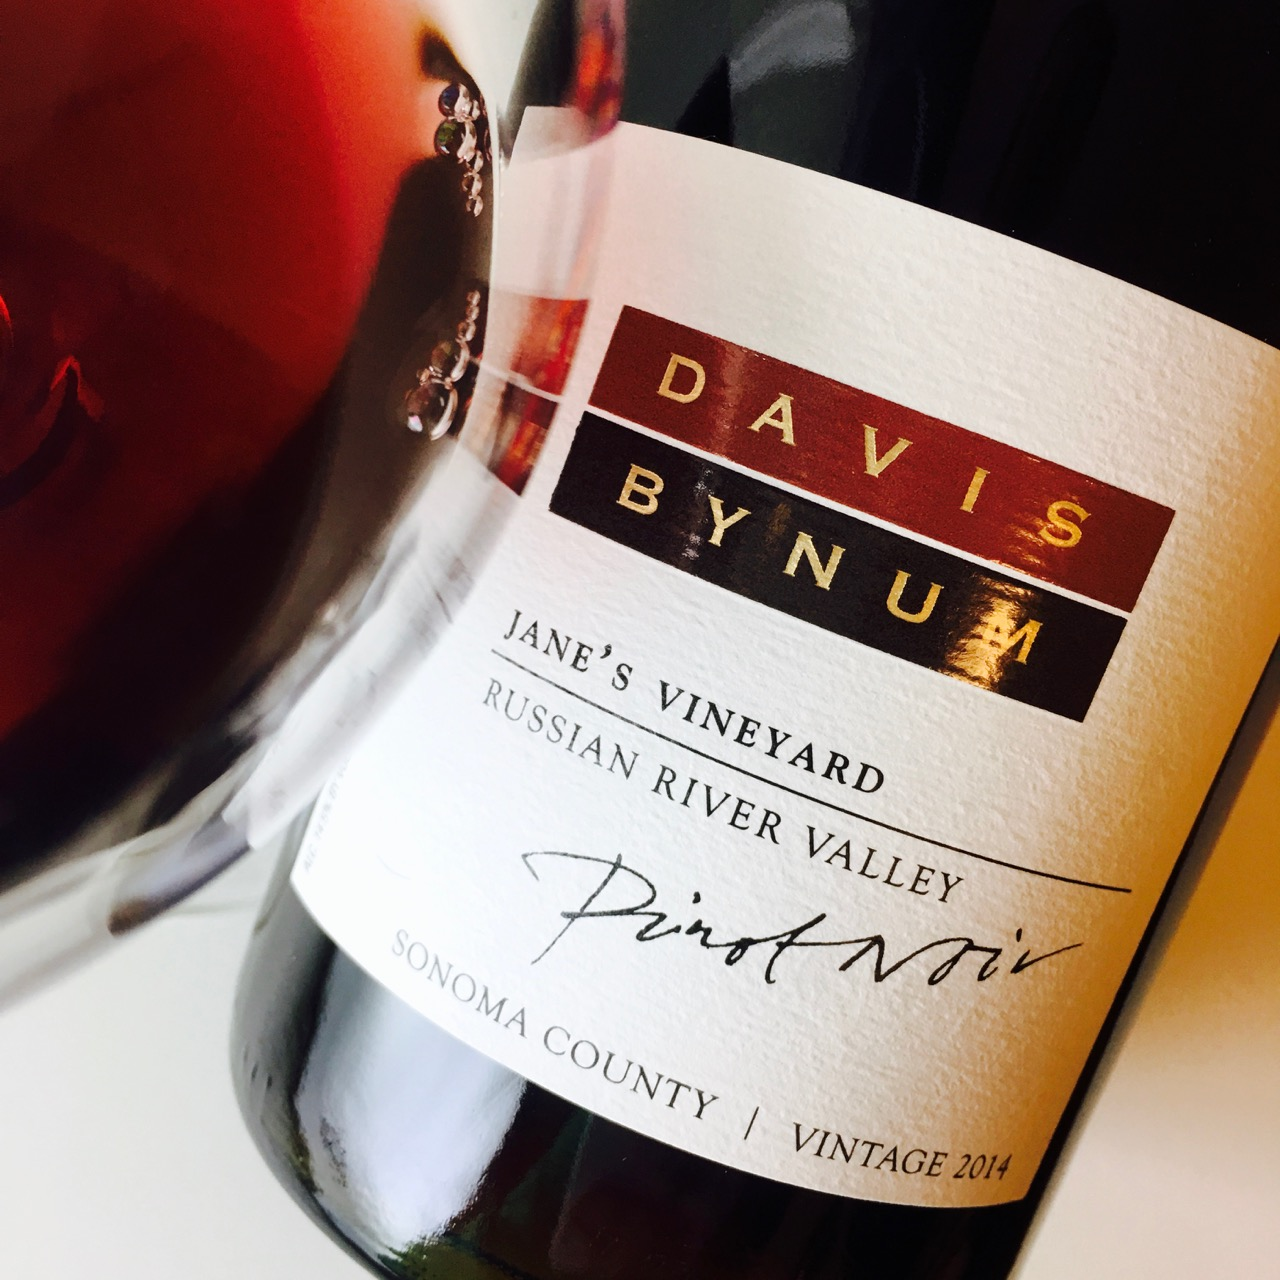 2014 Davis Bynum Pinot Noir Jane's Vineyard Russian River Valley, Sonoma County